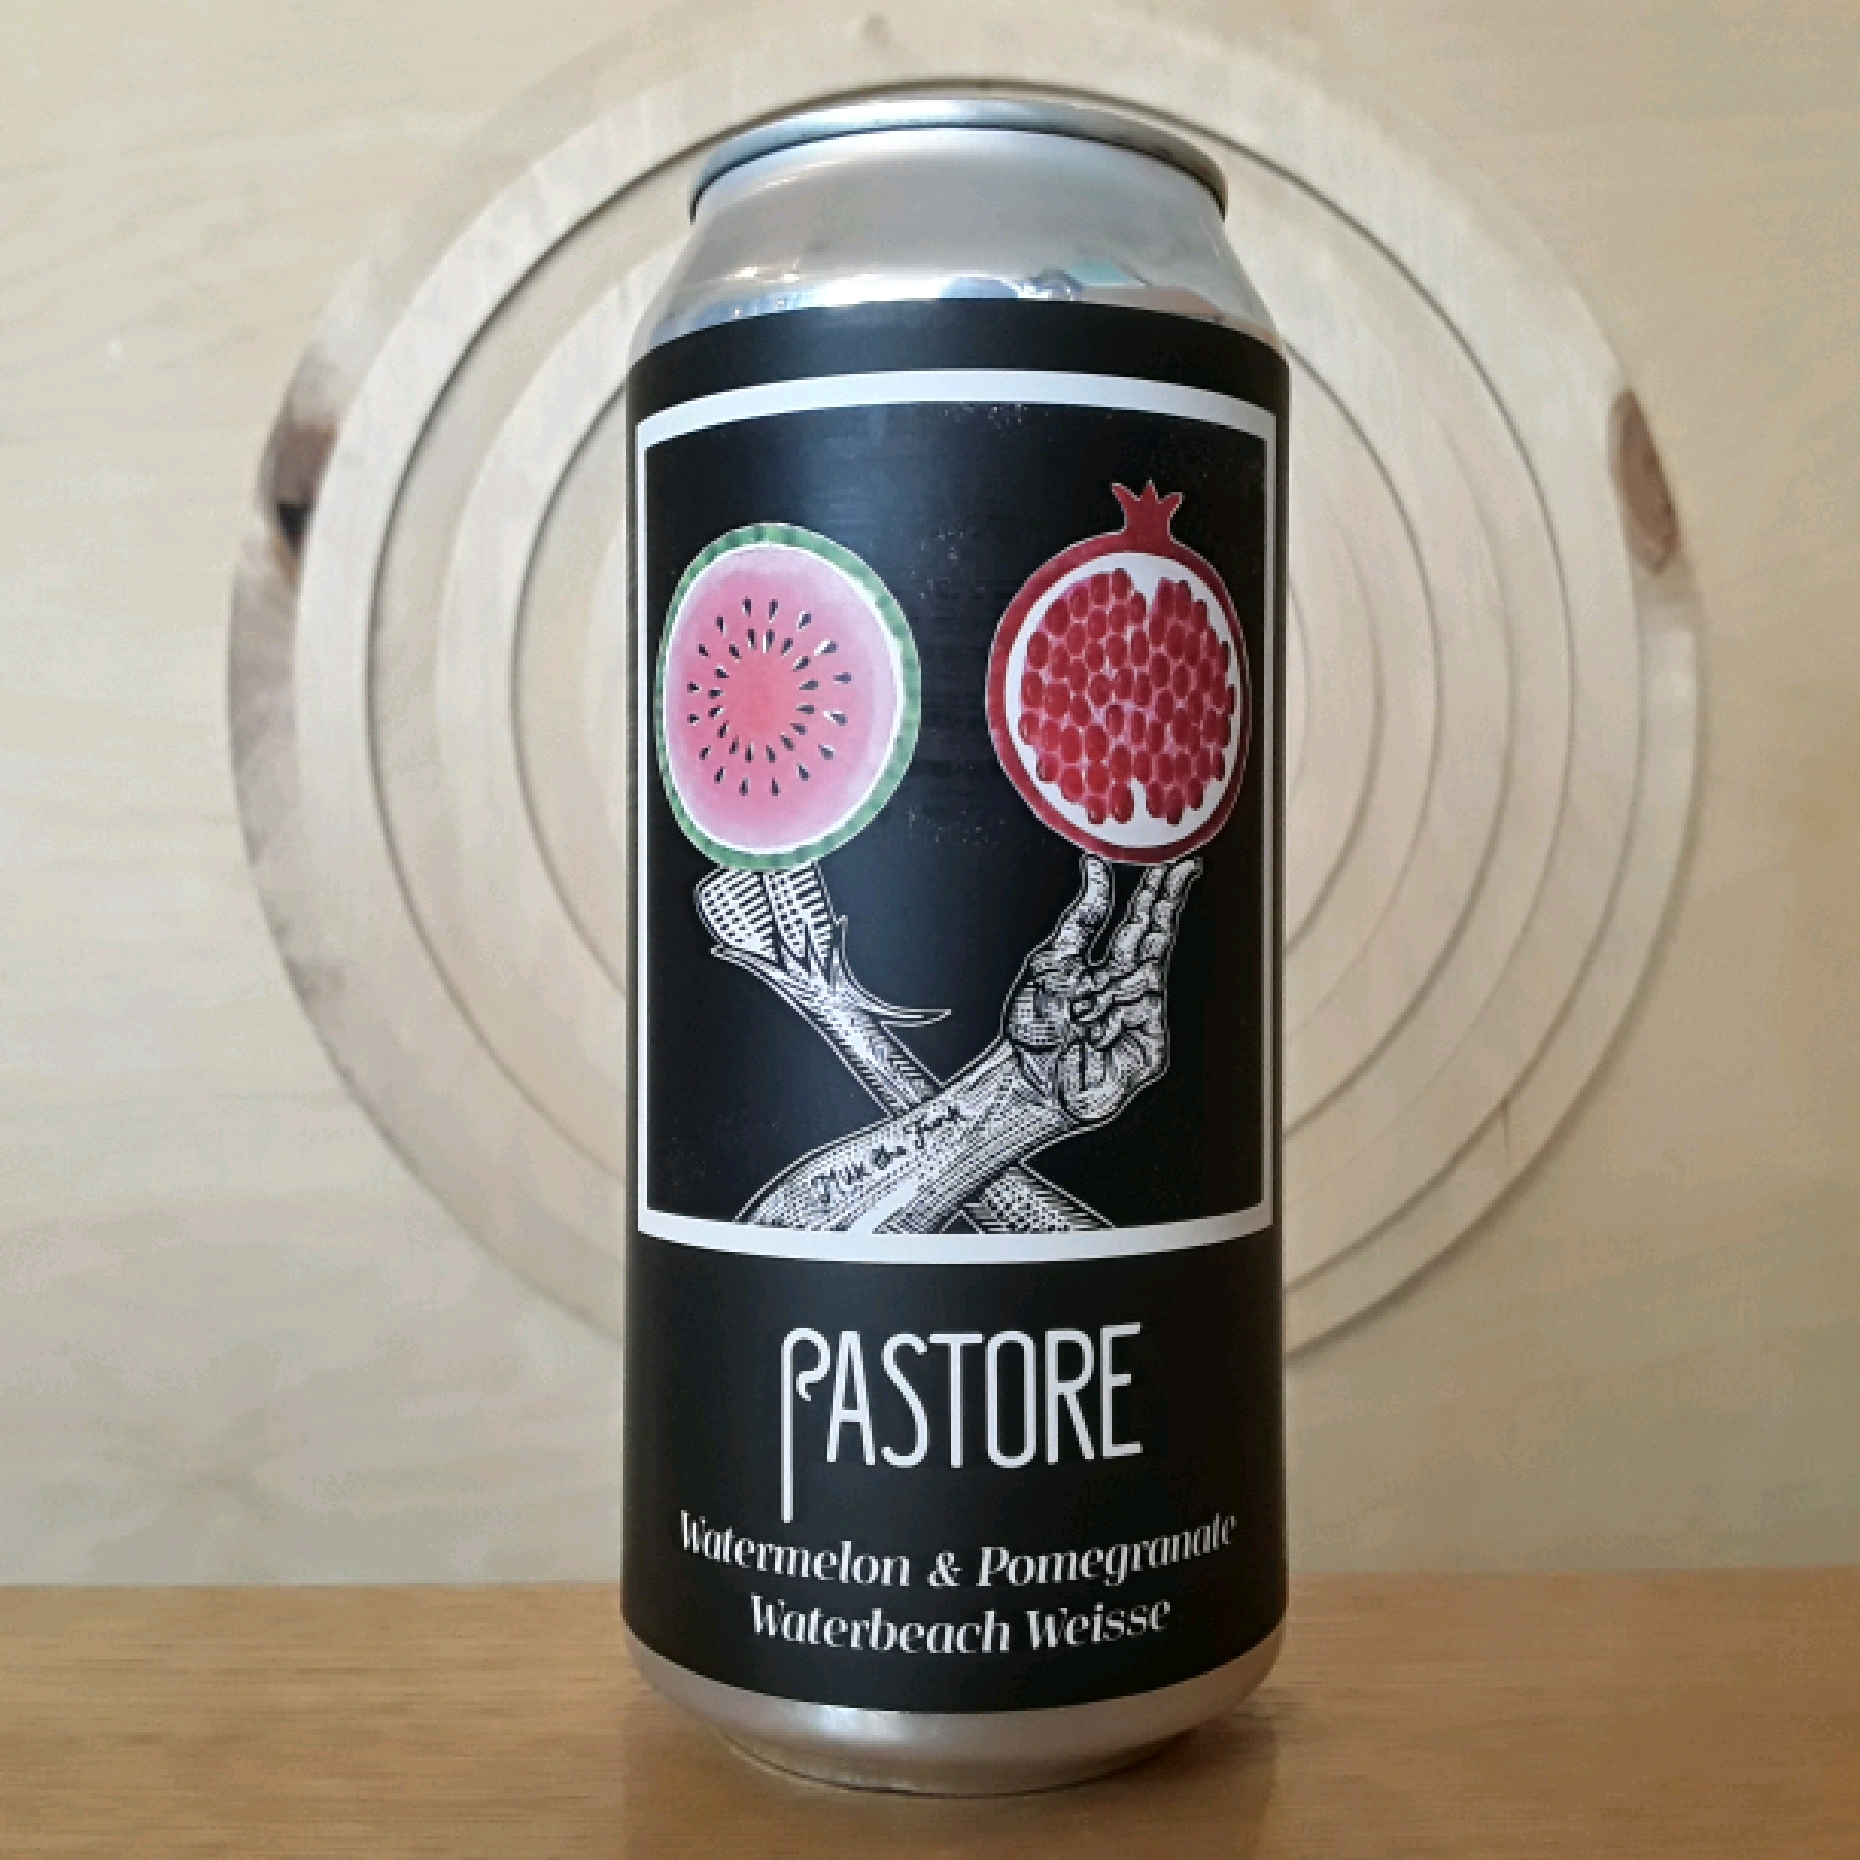 Pastore Brewing and Blending | Waterbeach Weisse Watermelon & Pomegranate | Sour - Fruited Berliner Weisse